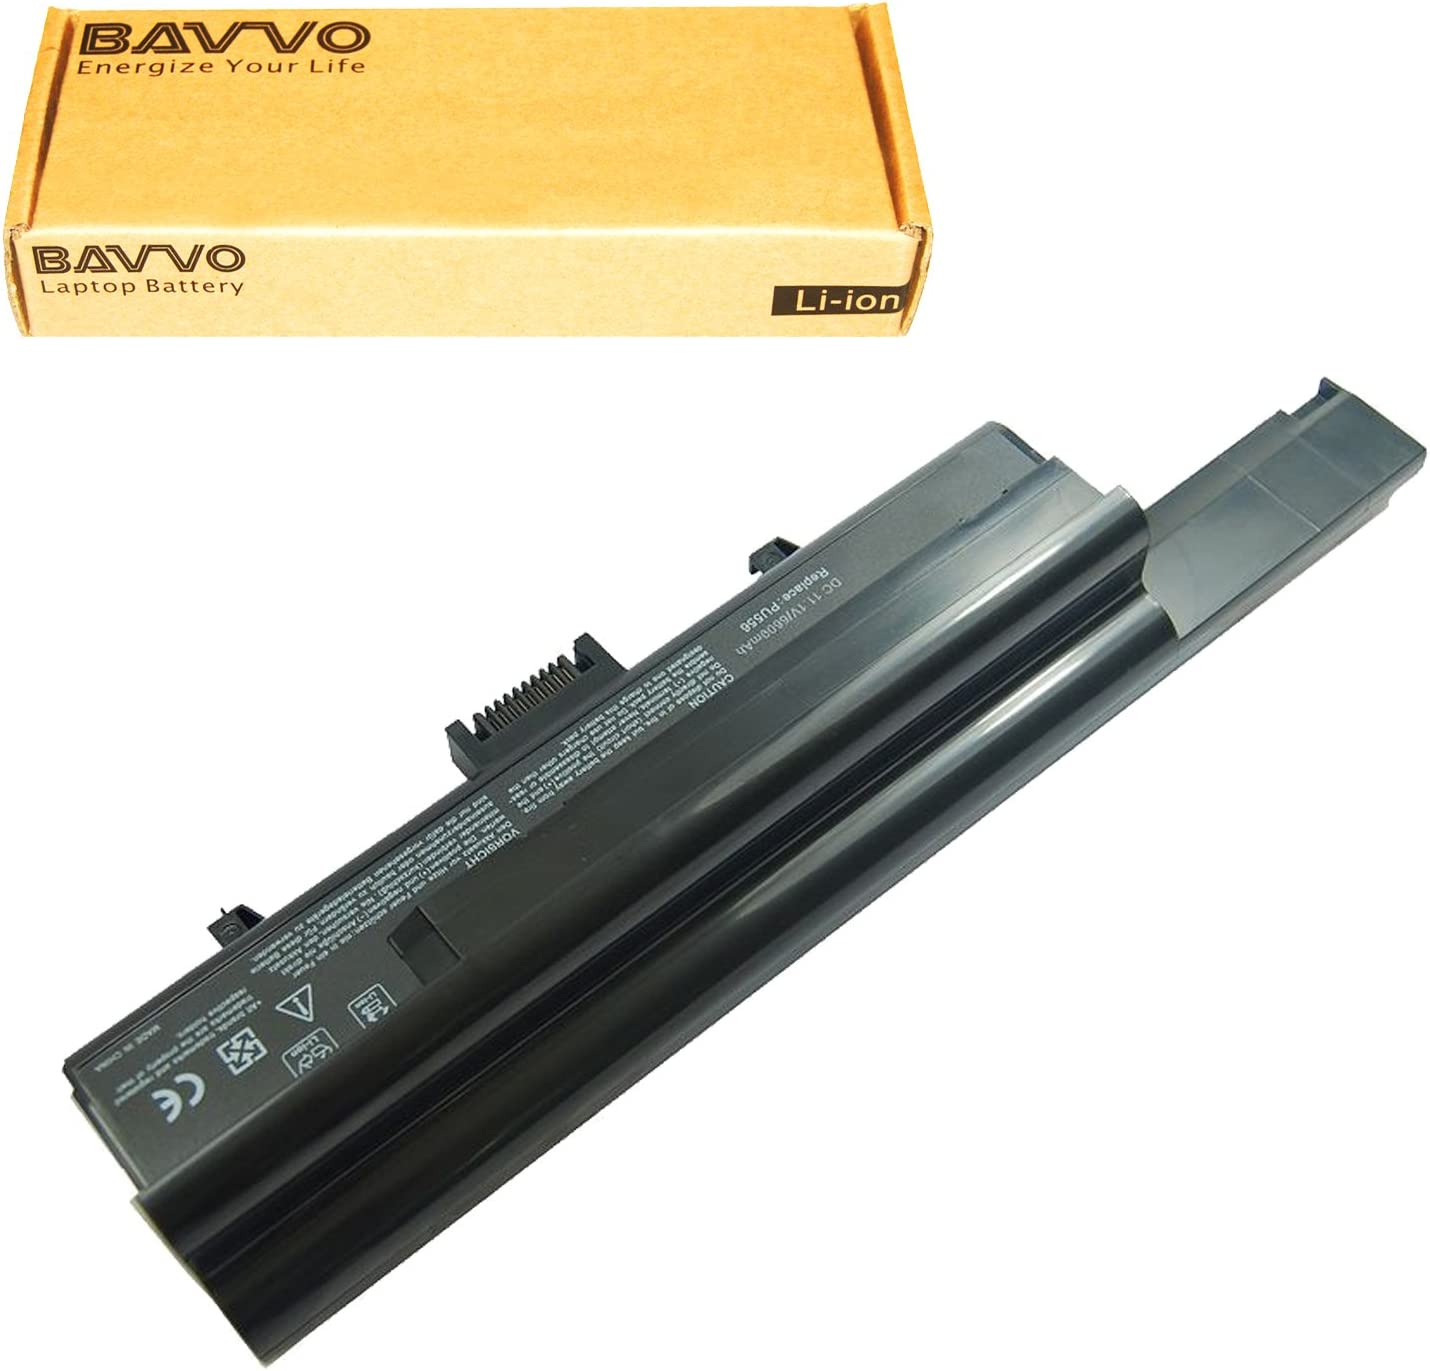 Bavvo 9-Cell Battery Compatible with DELL XPS M1330 Inspiron 1318 Series Fits UM230 PU556 CR036 T485 312-0566